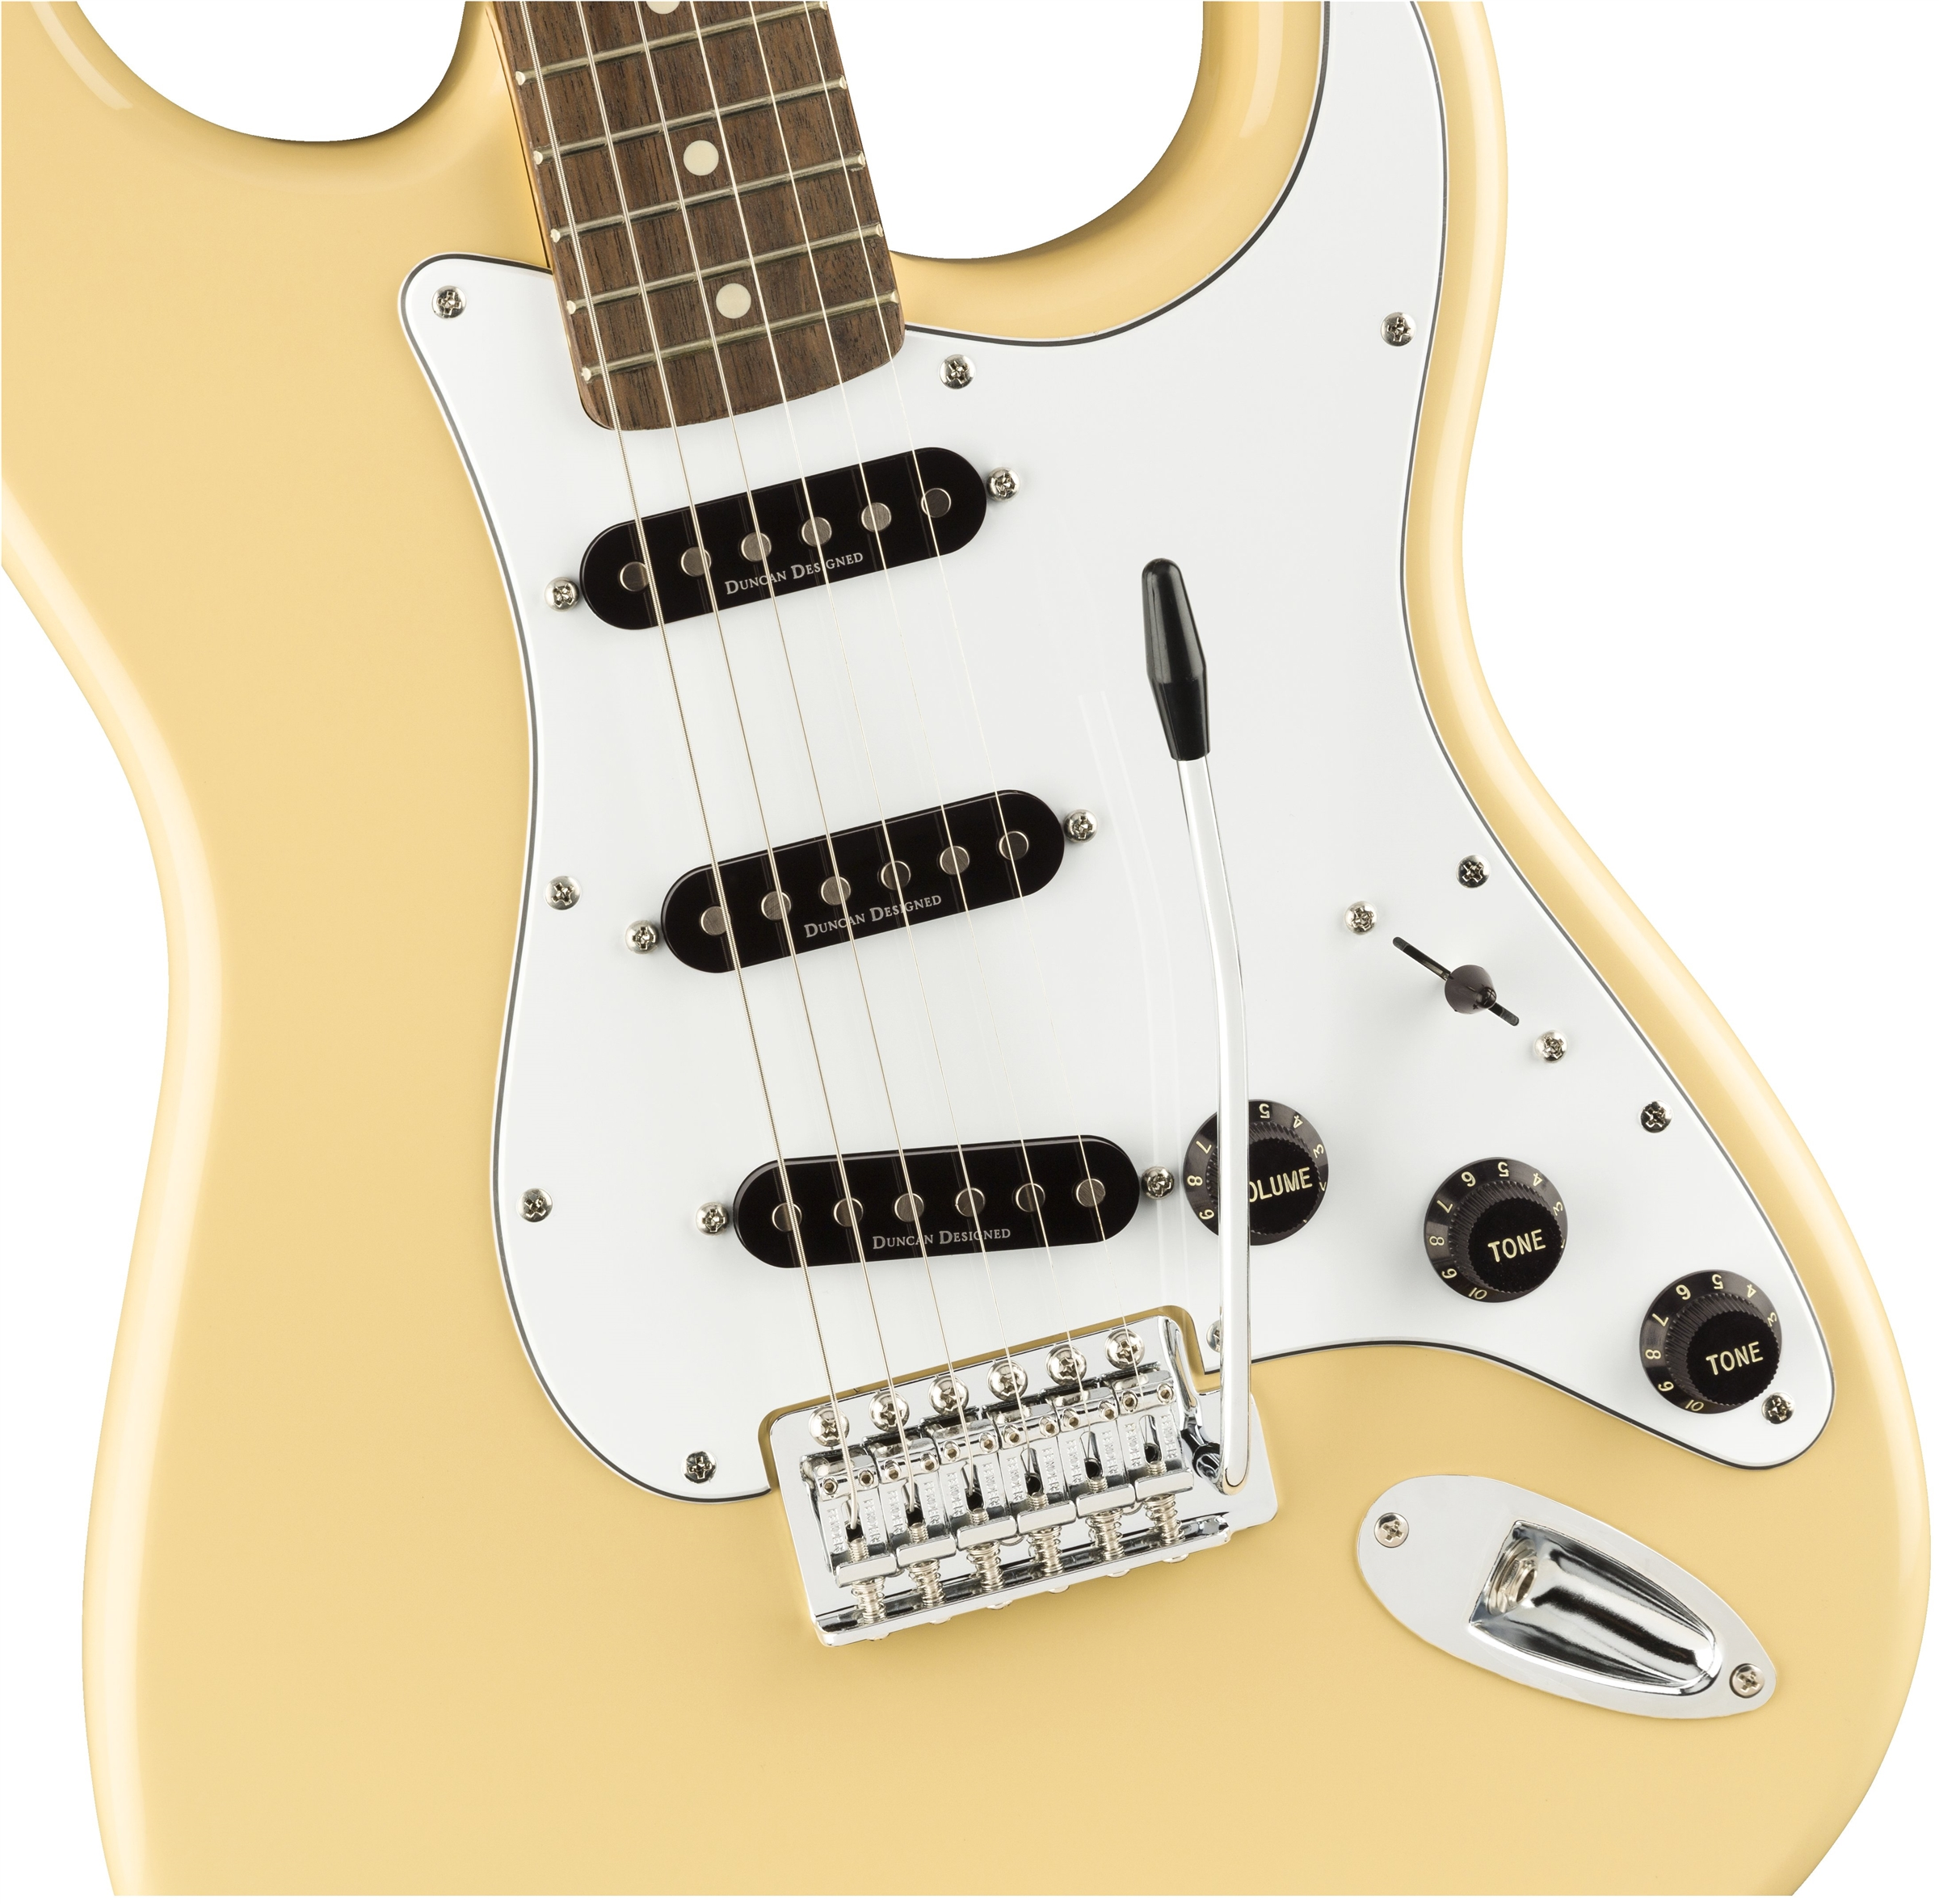 Dating late 70s stratocaster